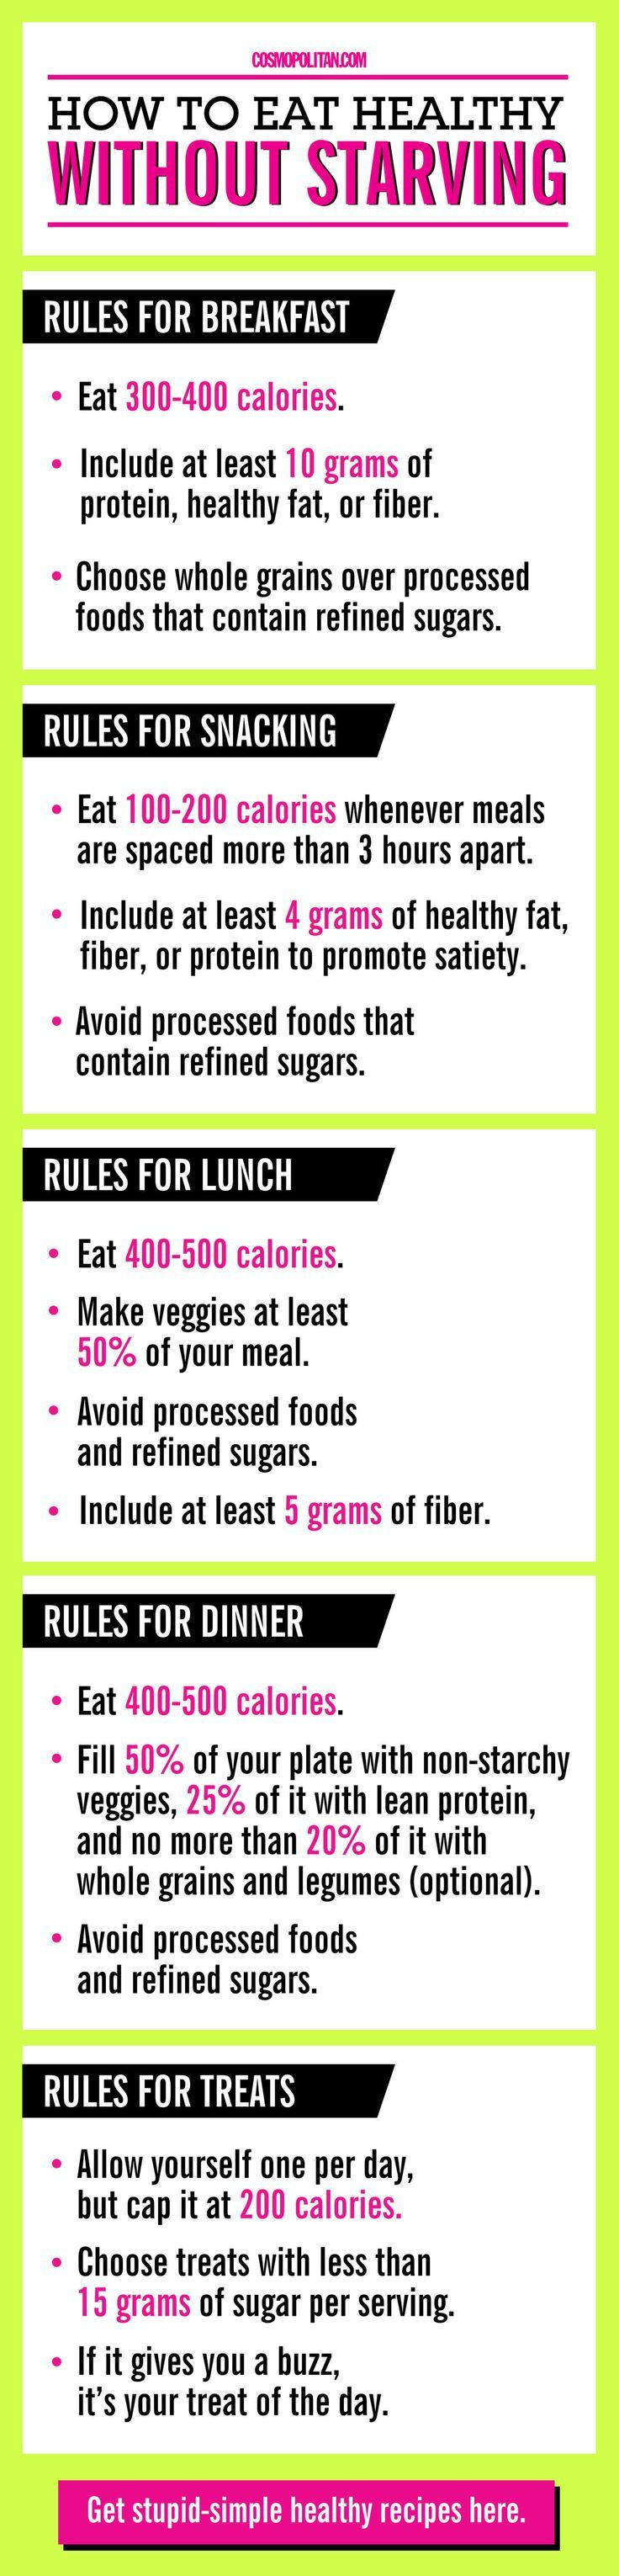 Daily diet for good health - 16 Healthy Eating Rules You Should Always Follow